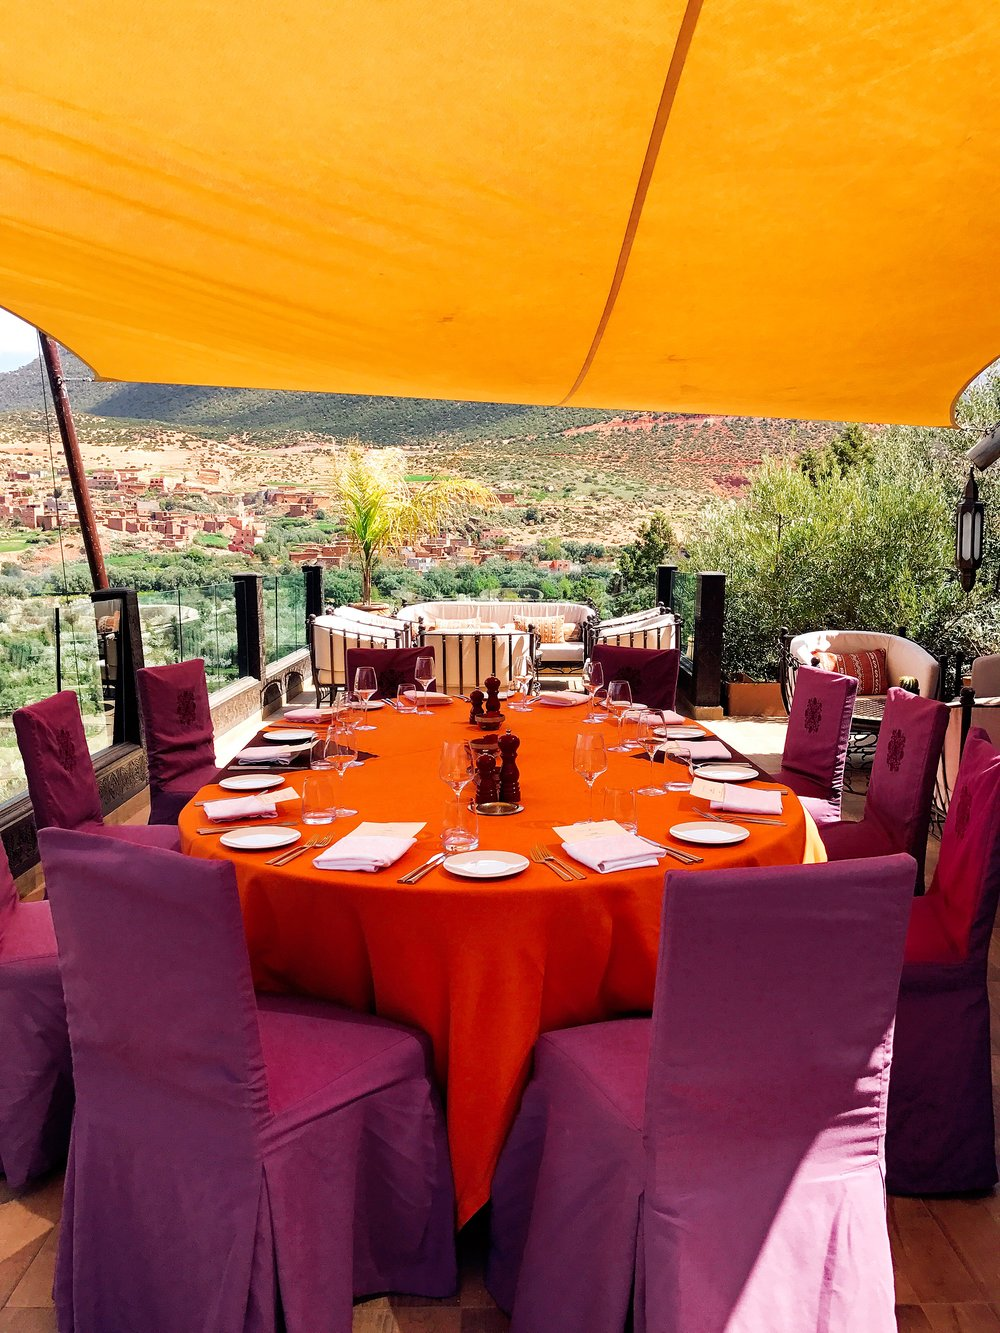 How gorgeous is this table? I love the Moroccan colors and how they pop against the mountains.